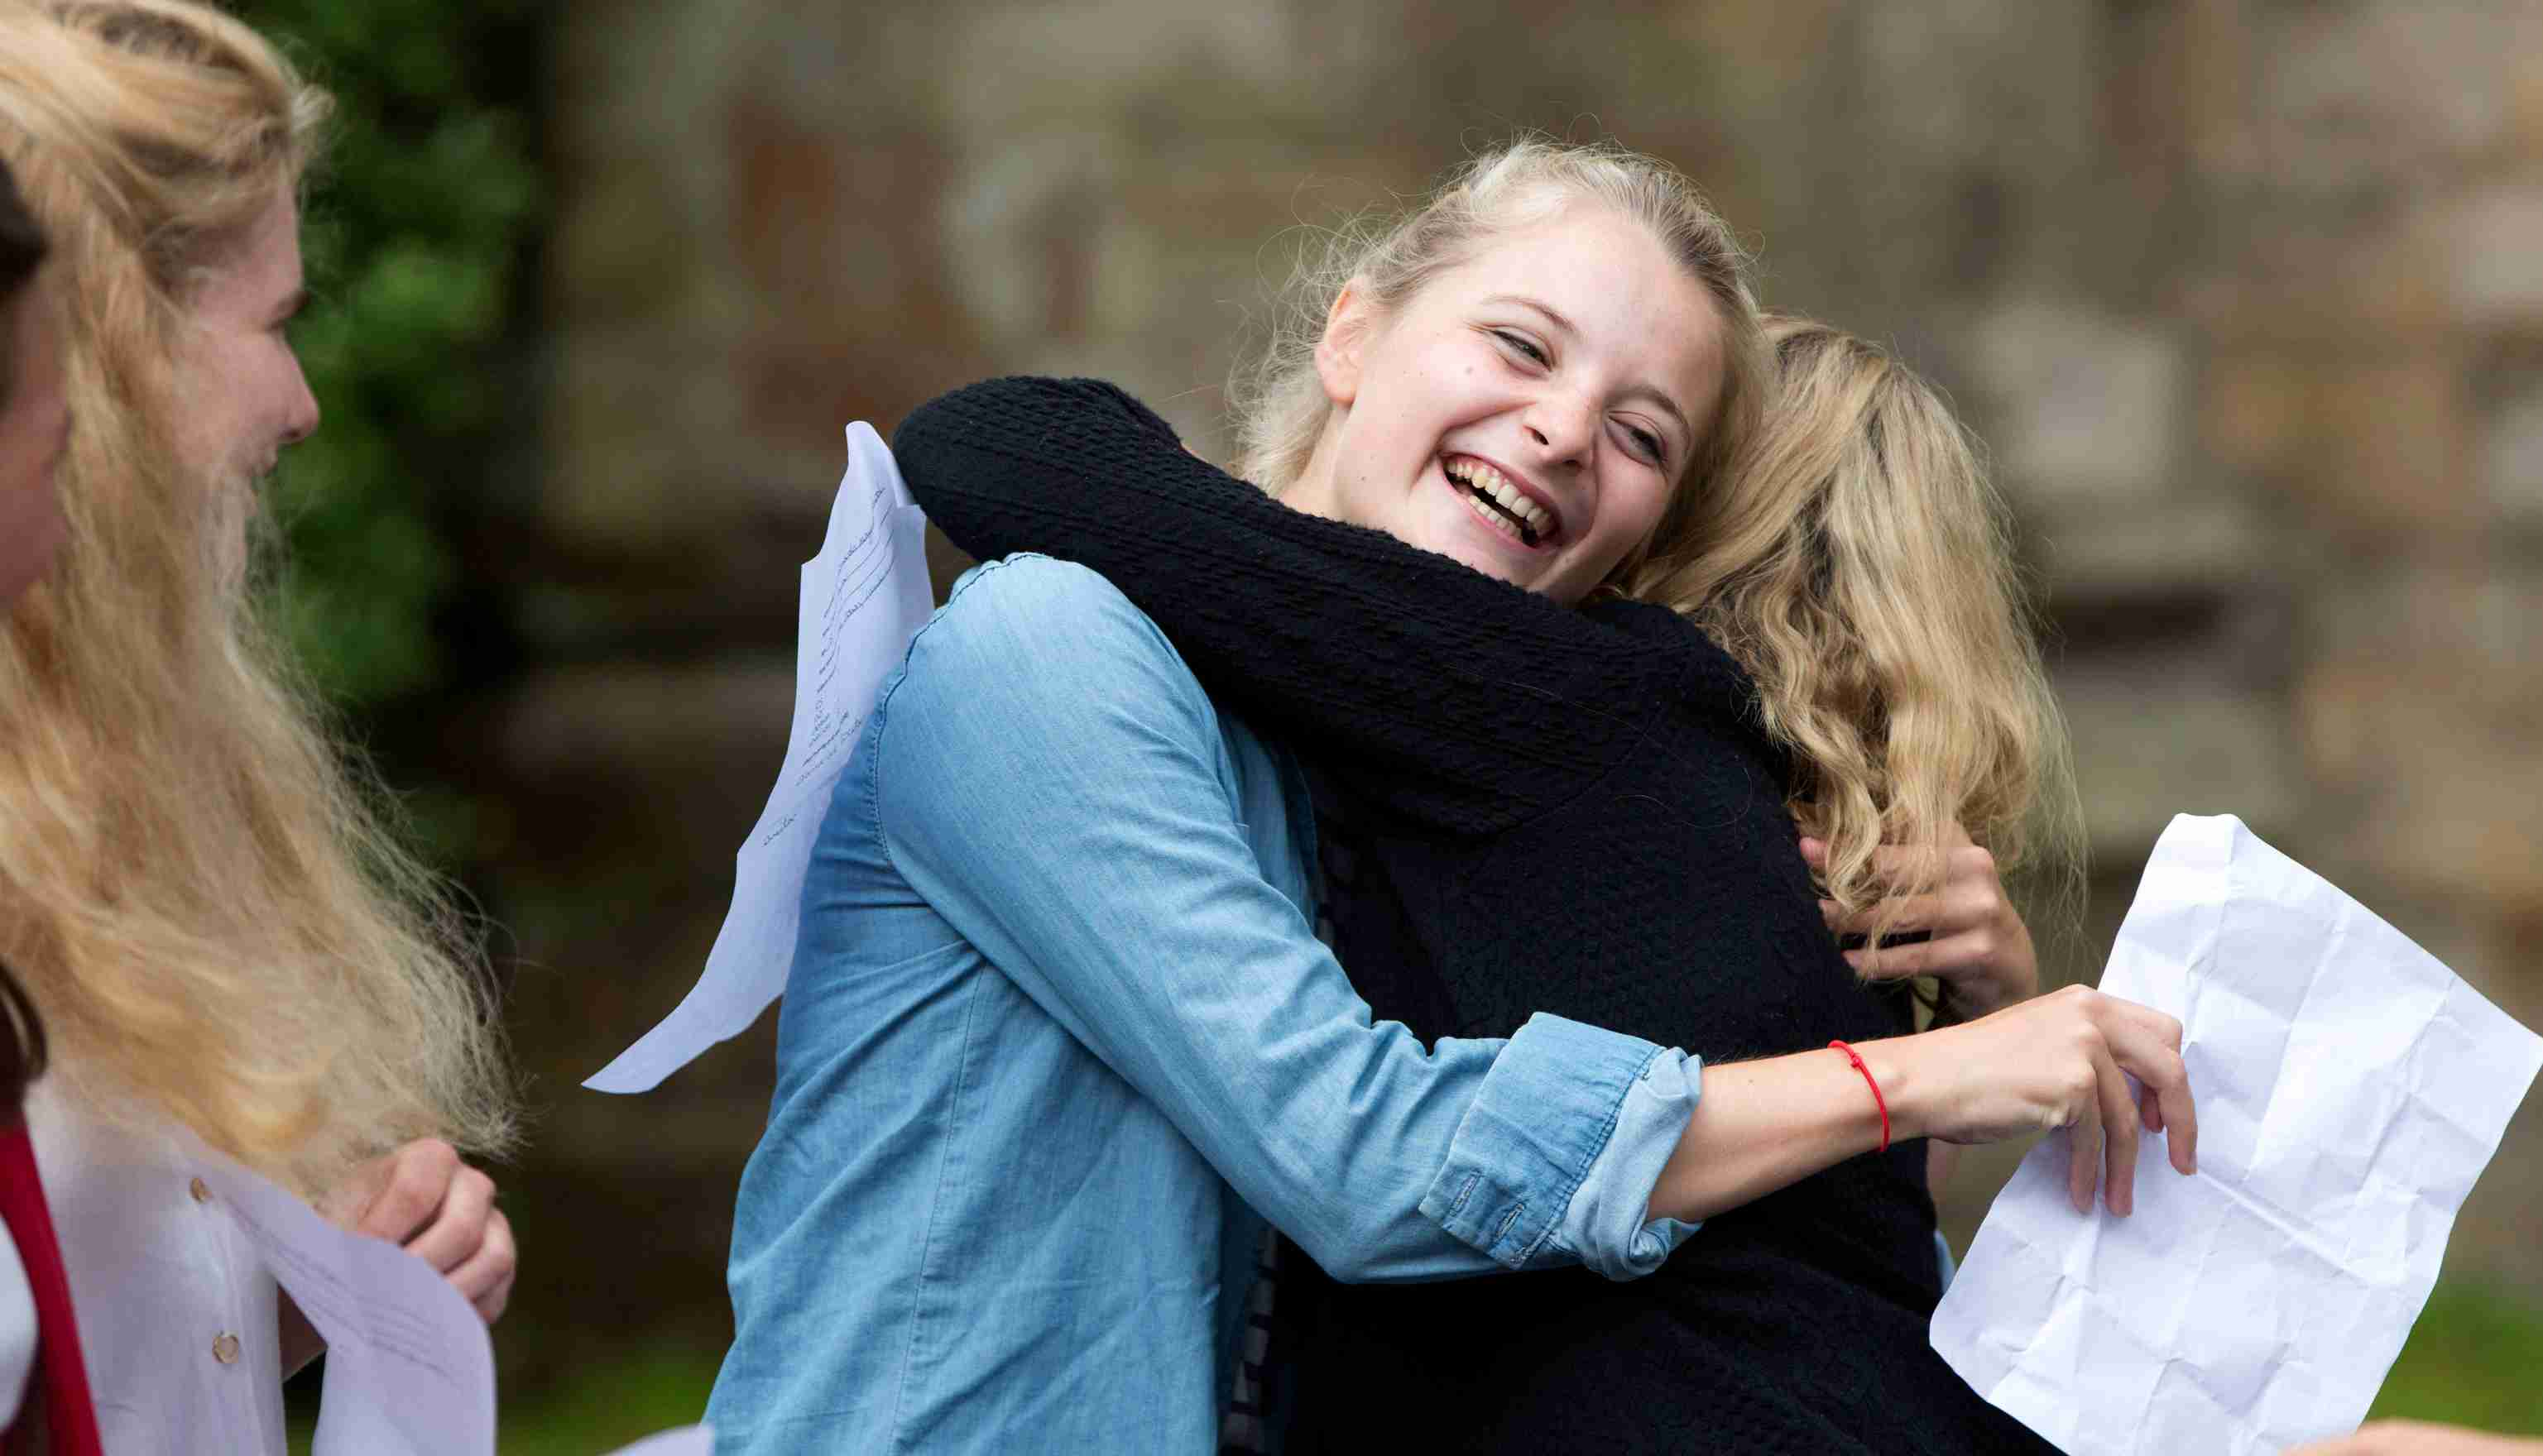 Pupils react after receiving their A-level exam results at St Leonards-Mayfield School in Mayfield, southern England August 15, 2013. More than 300,000 teenage students received their A-level results, in England, Wales and Northern Ireland on Thursday.    REUTERS/Neil Hall (BRITAIN - Tags: EDUCATION SOCIETY) - LM1E98F0SJU01